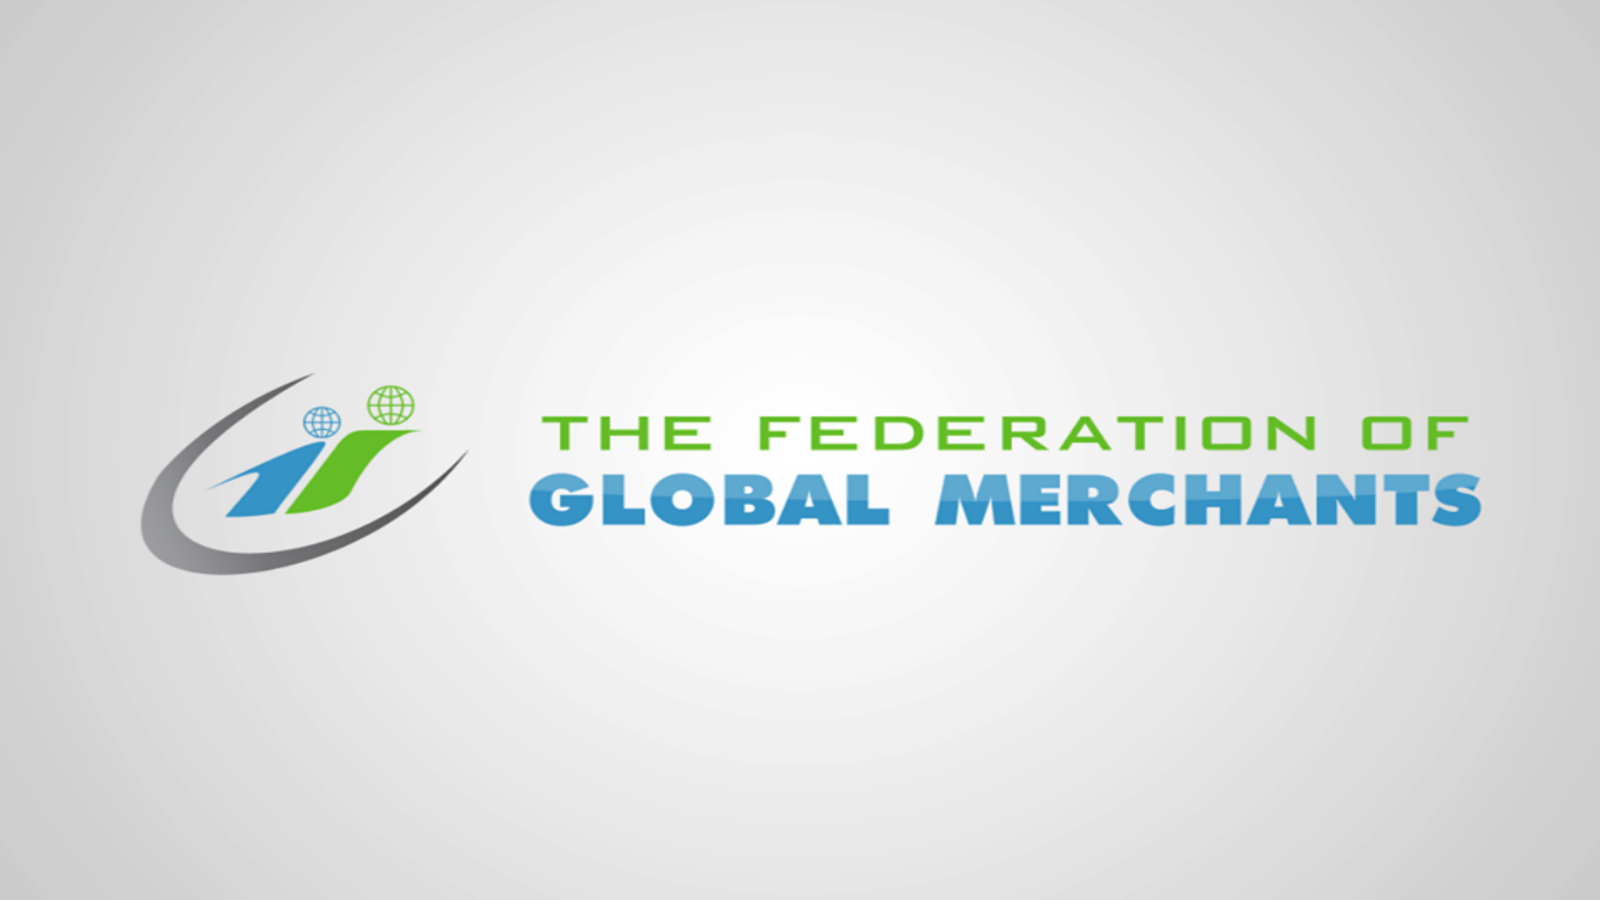 FEDERATION OF GLOBAL MERCHANTS